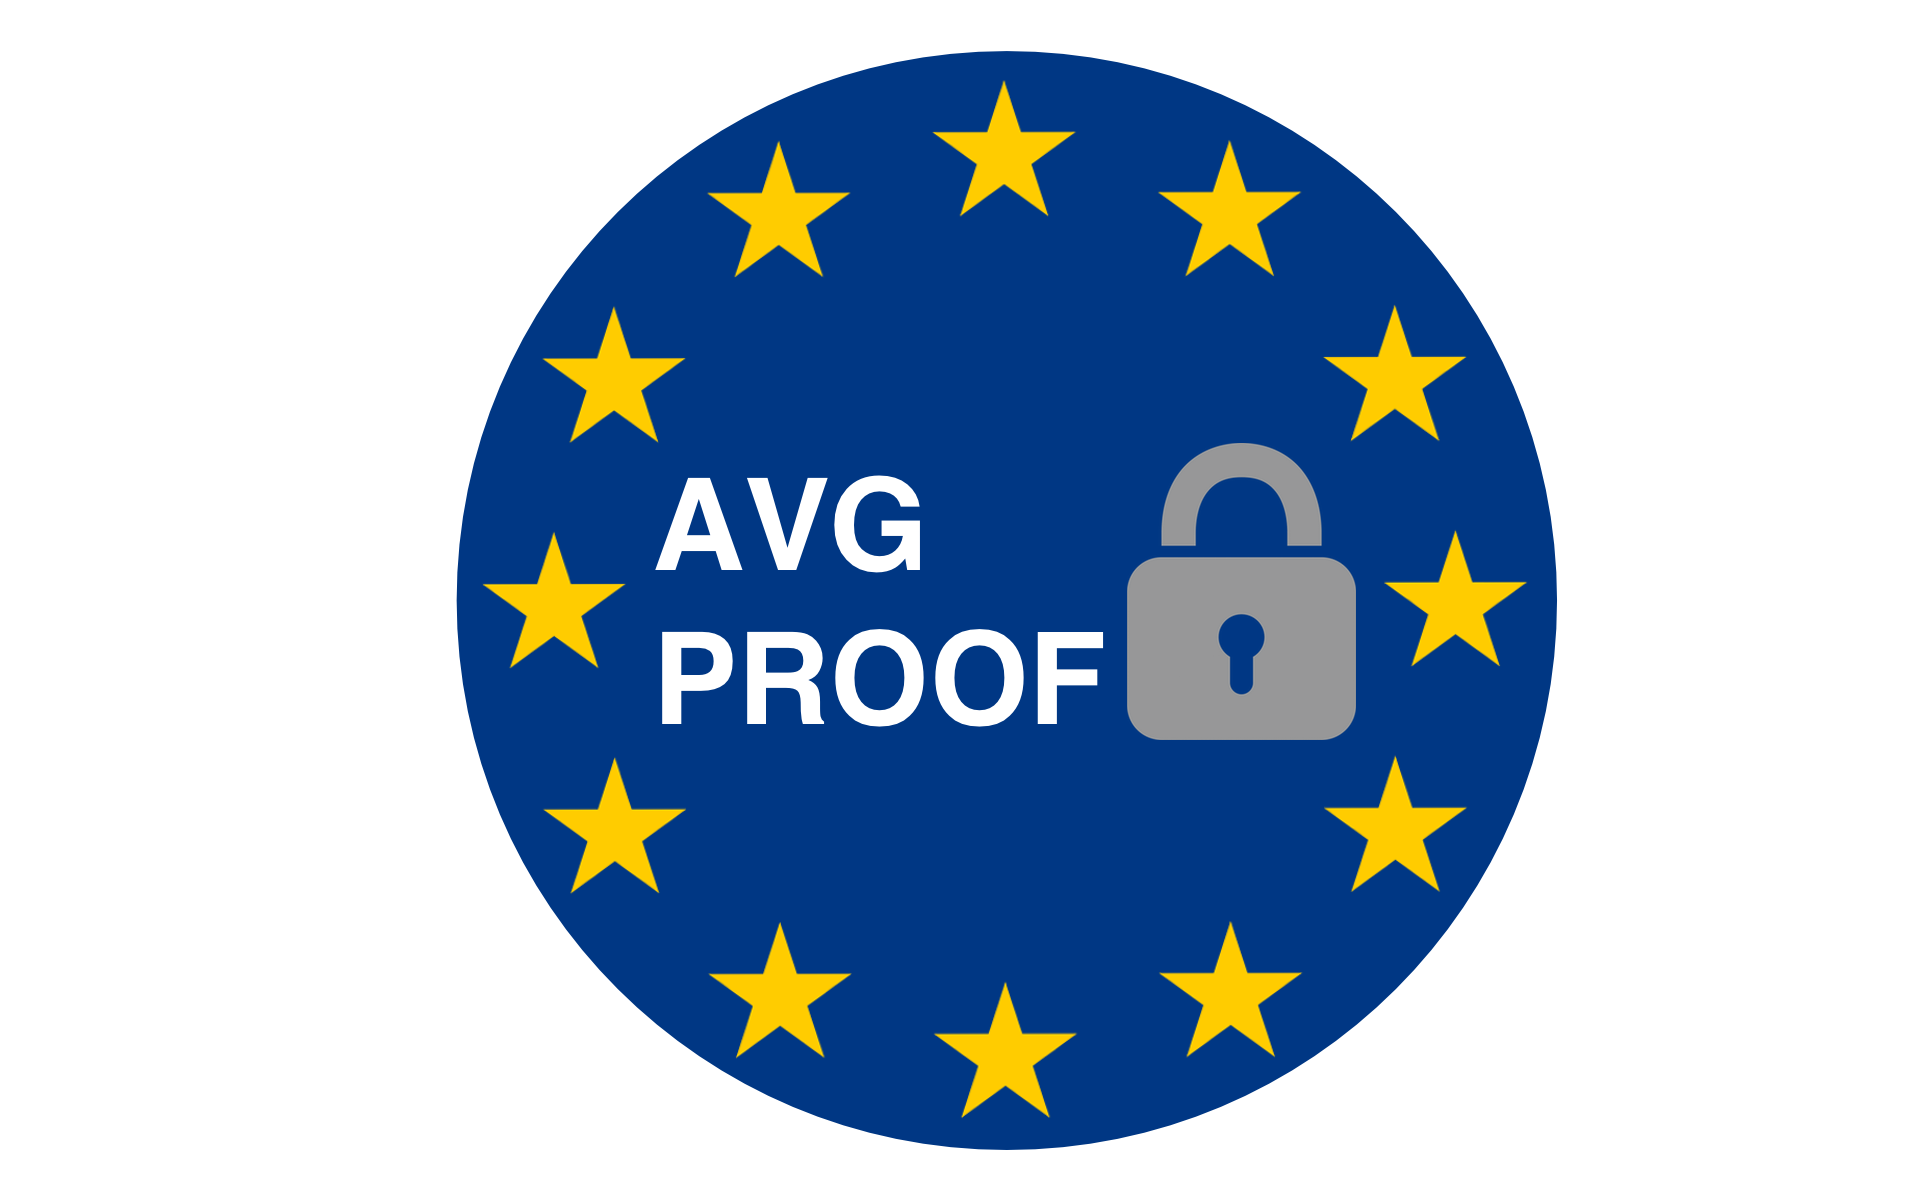 avg-proof